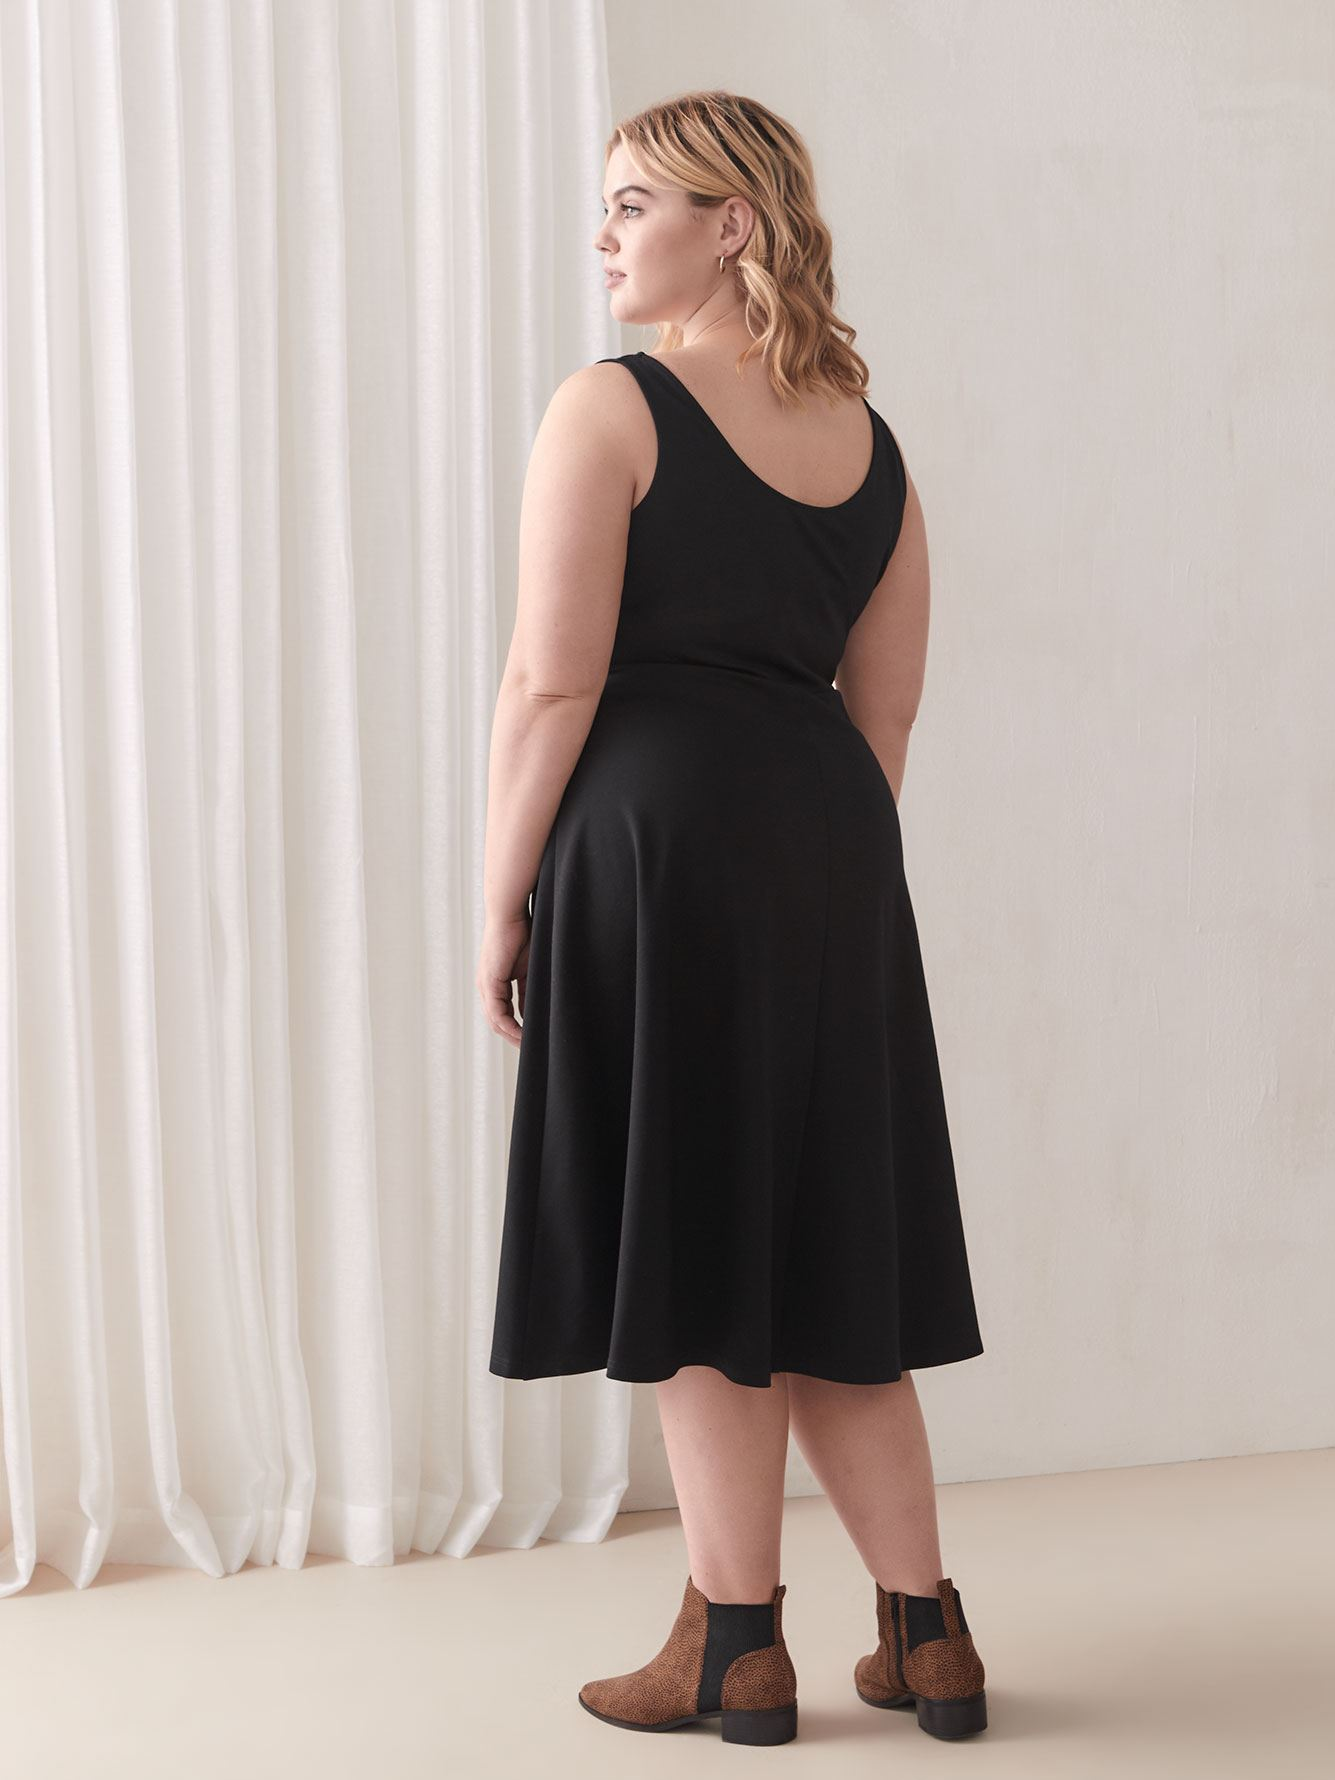 Fit & Flared Belted Black Dress - City Chic